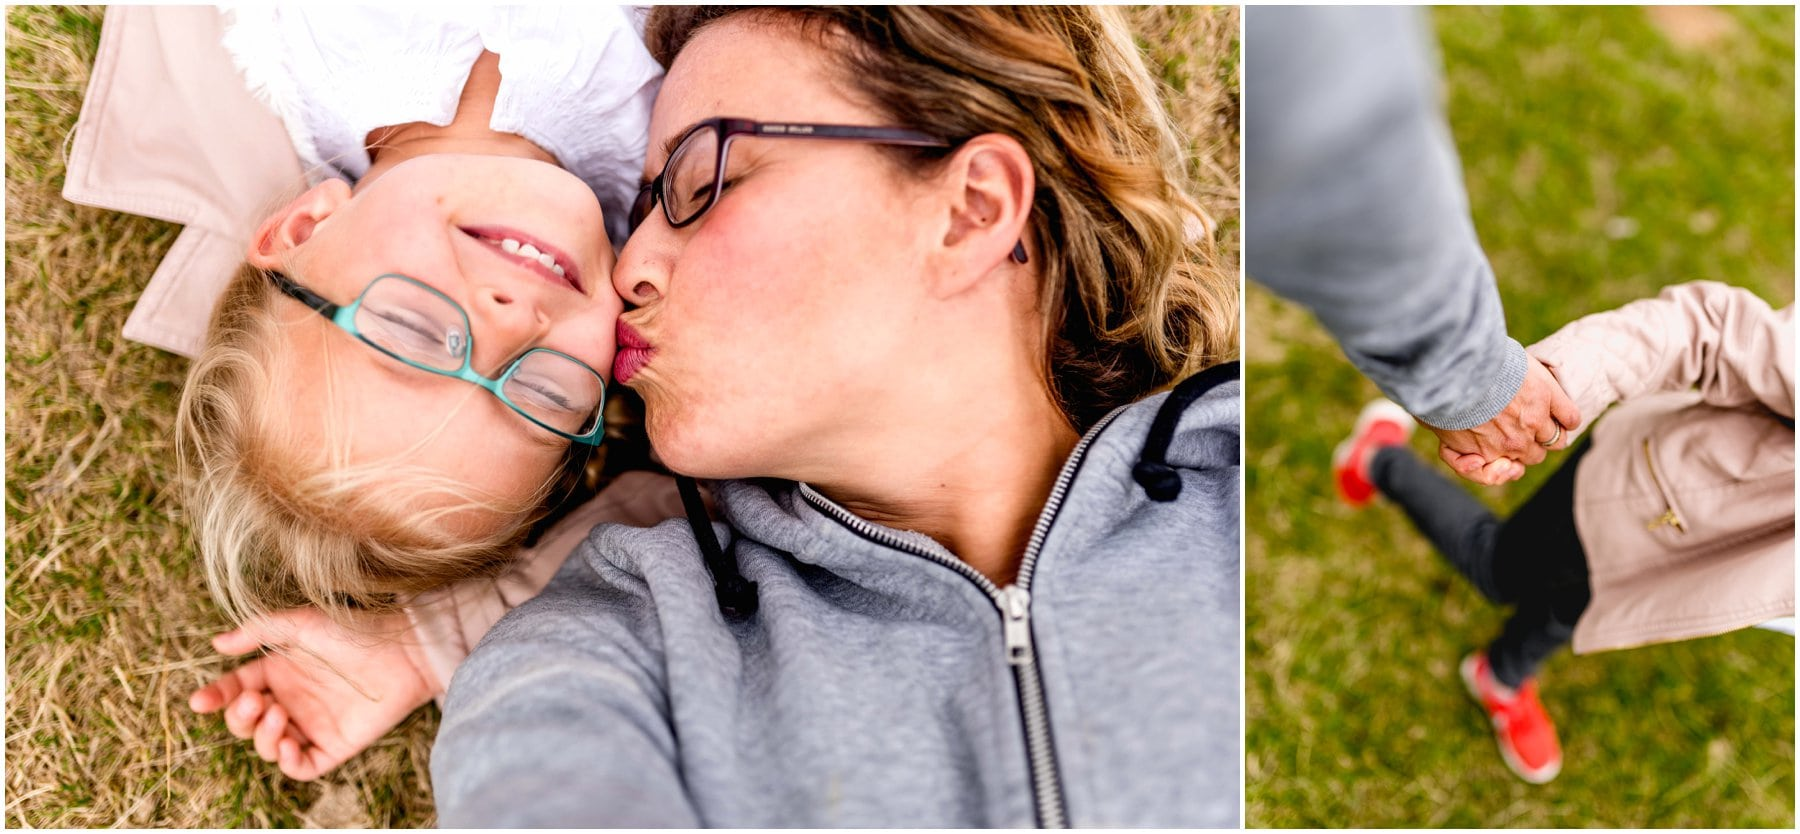 Frankie's birthday shoot at age 8 in Sutton Park by Lisa Carpenter Photography, Sutton Coldfield and Birmingham Wedding photographer specialising in weddings, family shoots and newborn photography photos